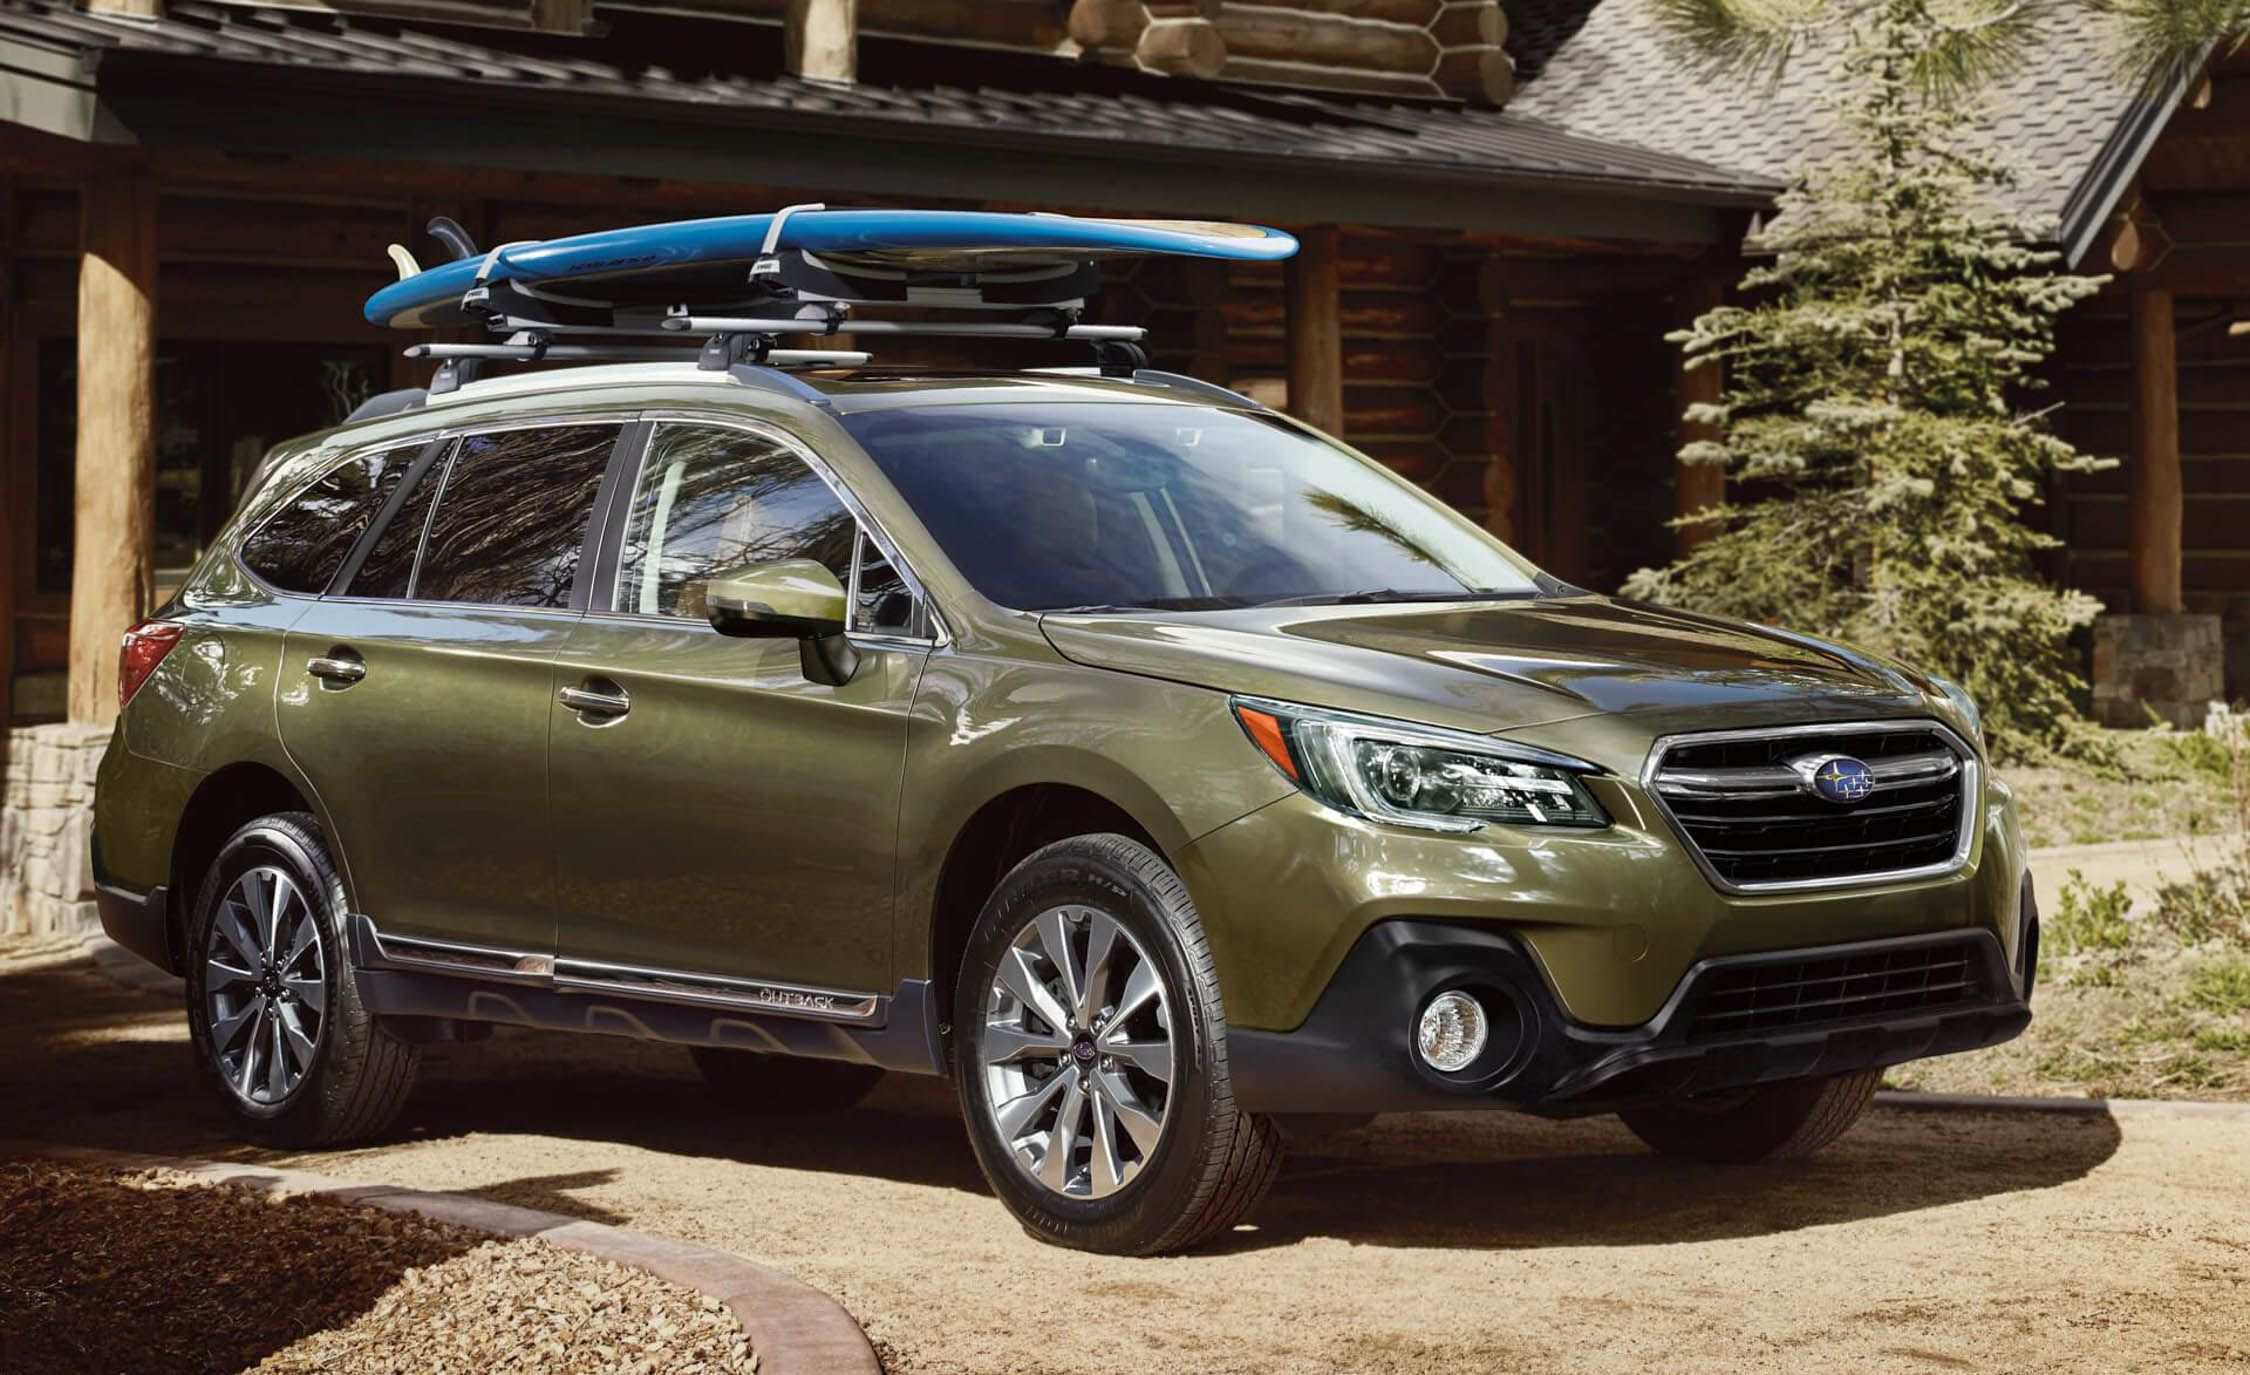 38 All New 2020 Subaru Outback Gas Mileage Model for 2020 Subaru Outback Gas Mileage